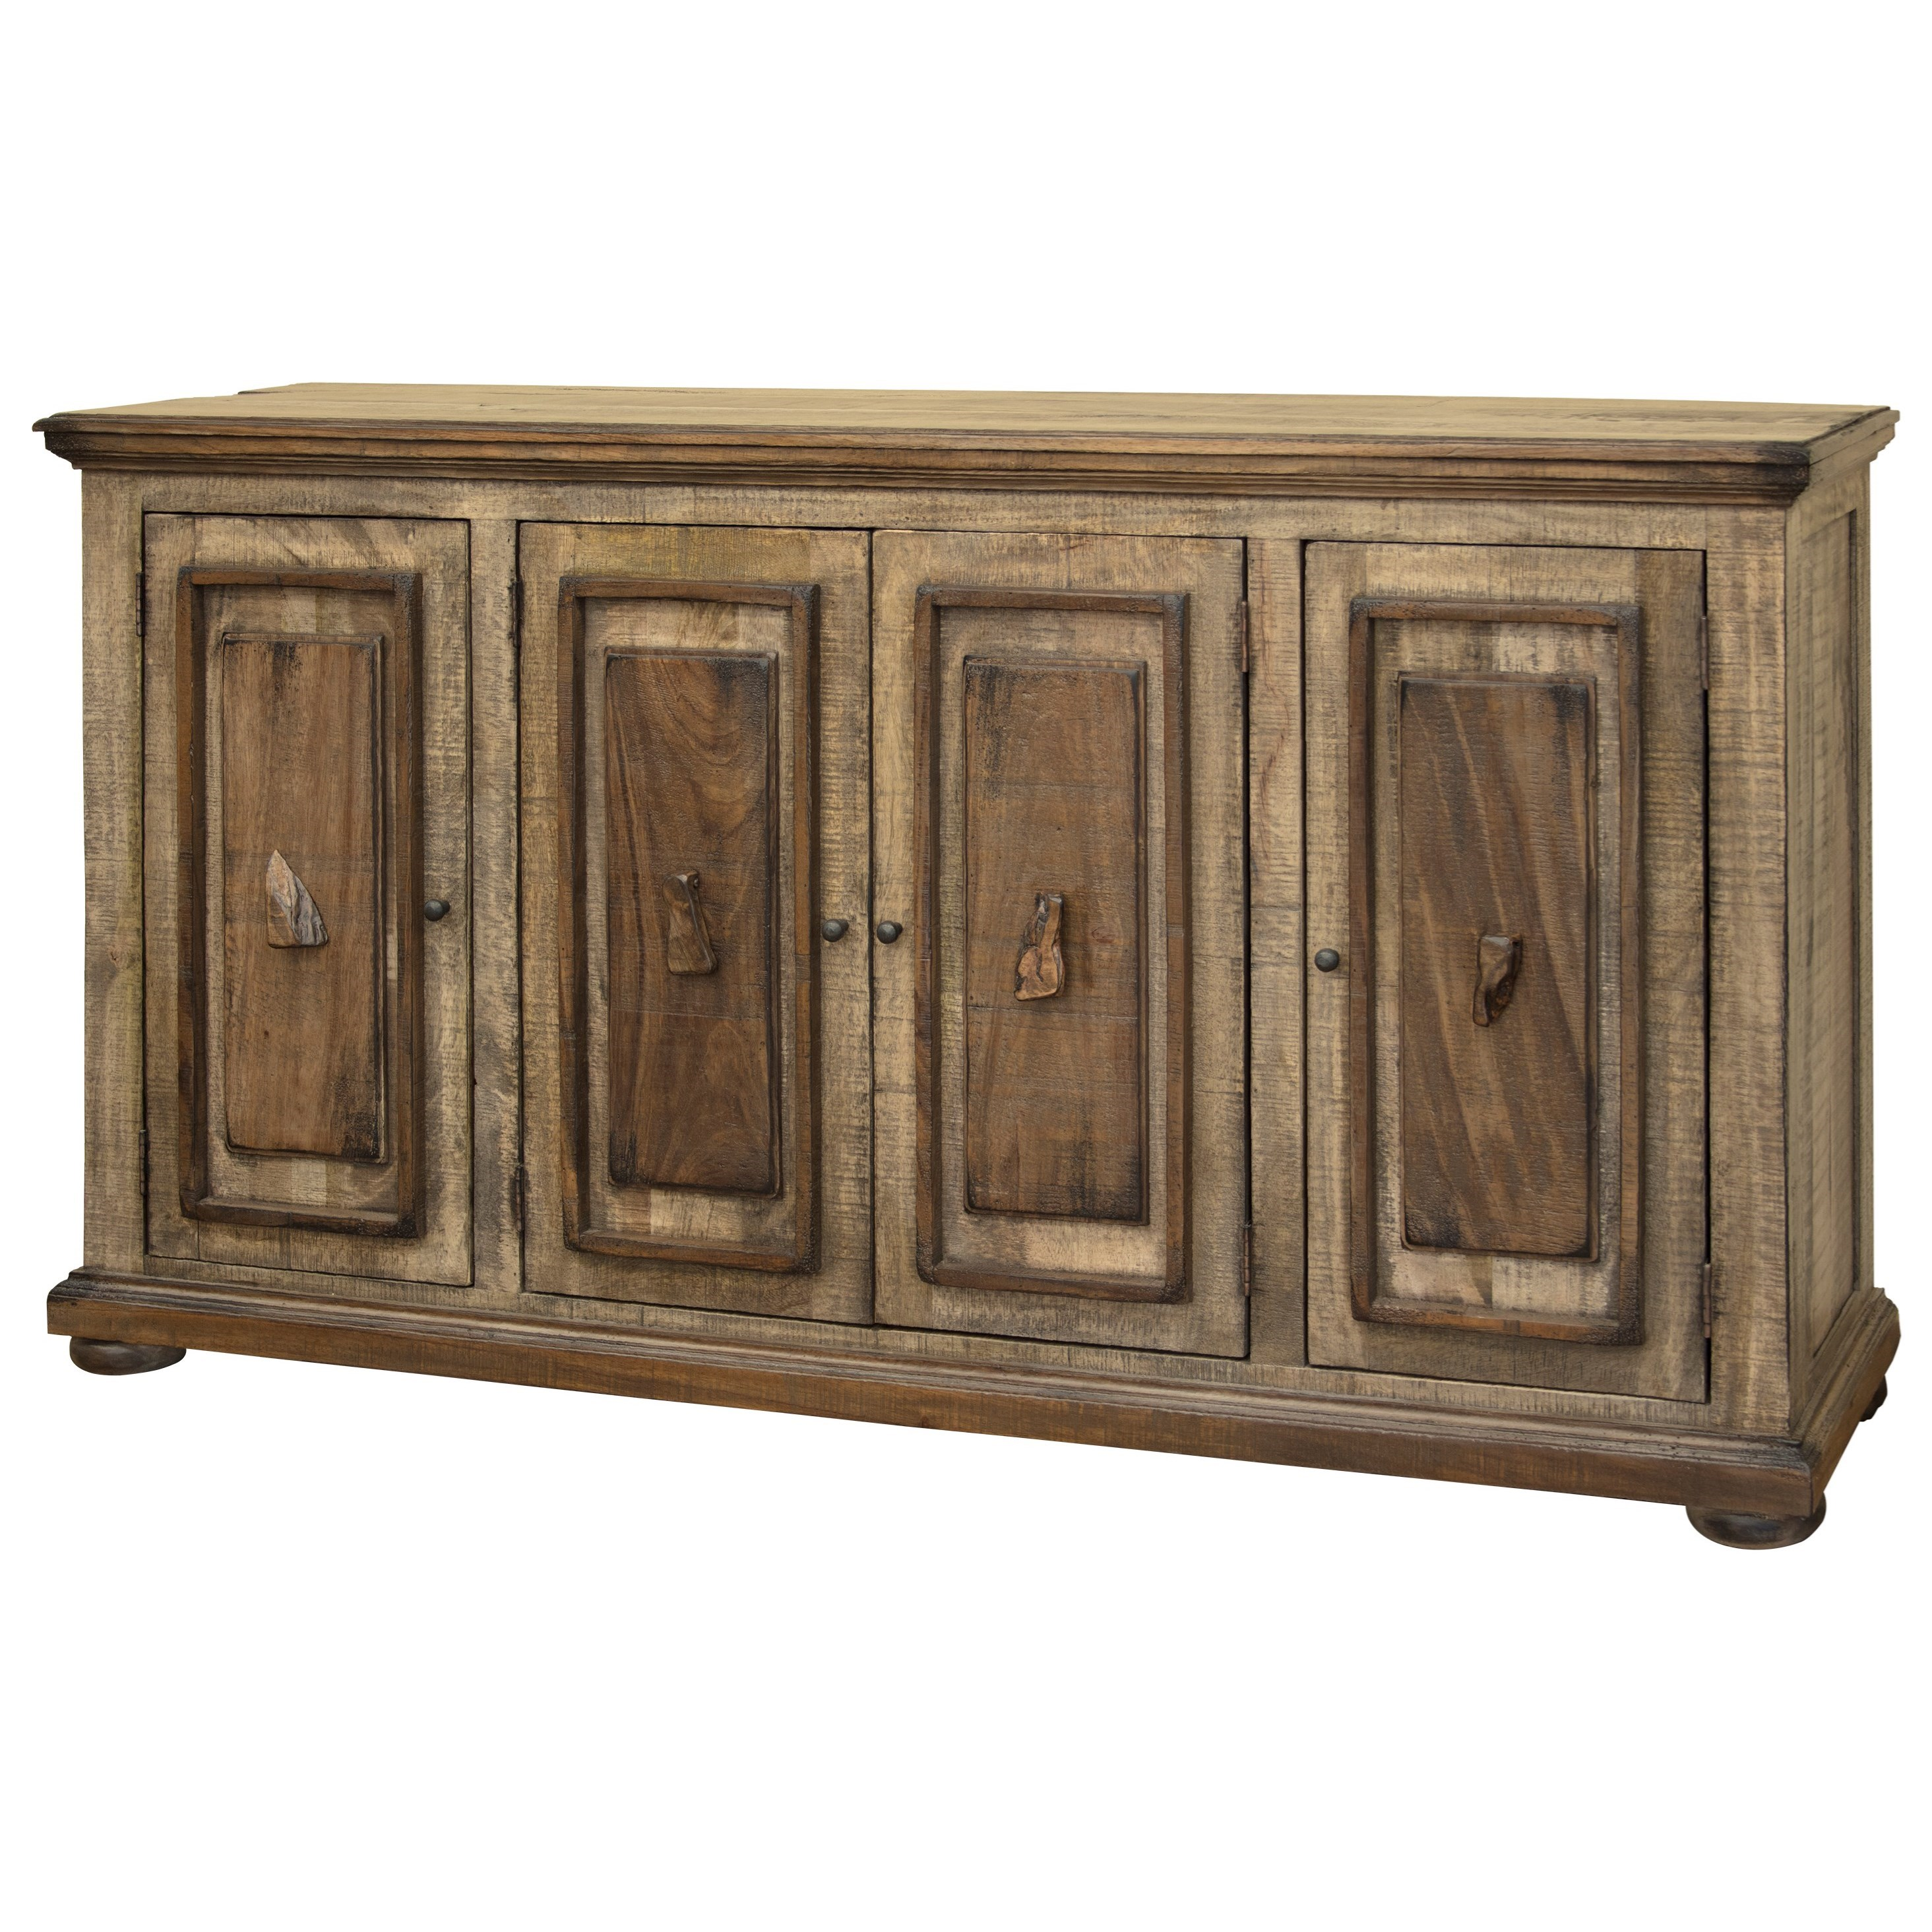 Shop Furniture Direct: International Furniture Direct Mesquite IFD9911CNS Rustic